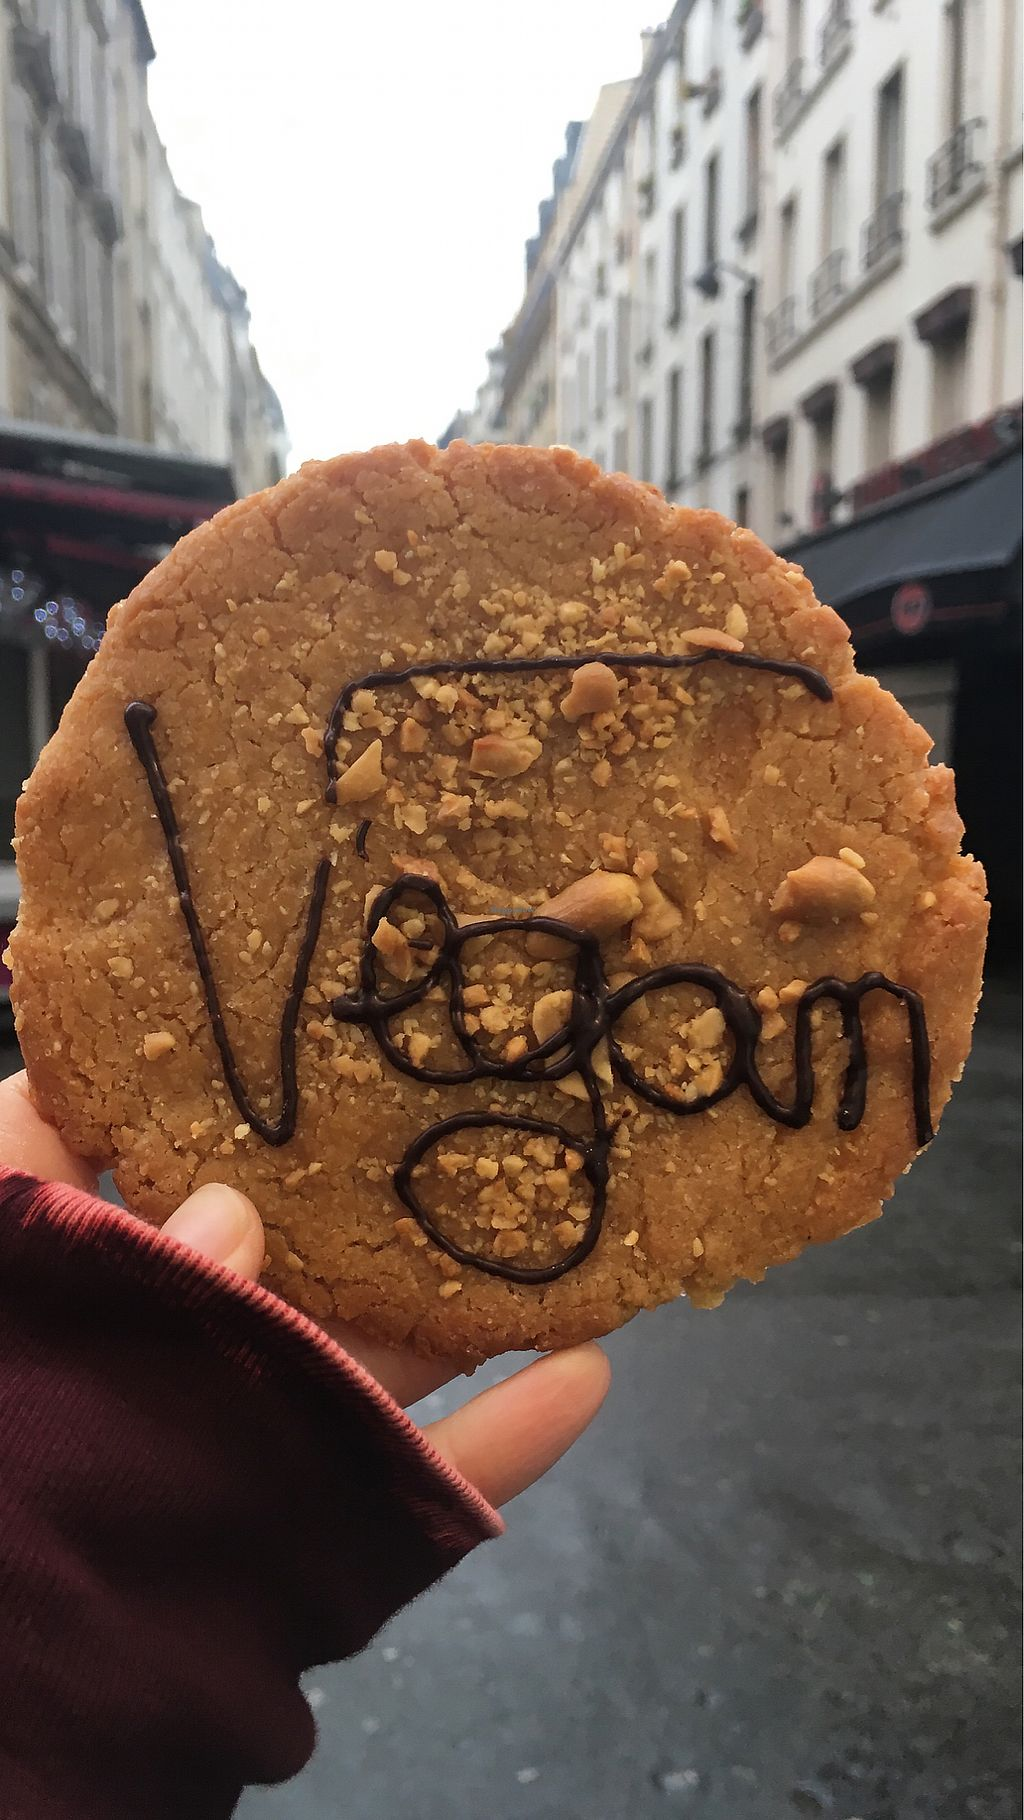 "Photo of Jo and Nana Cakes  by <a href=""/members/profile/AyelenS"">AyelenS</a> <br/>Take away cookie in Paris  <br/> December 4, 2017  - <a href='/contact/abuse/image/104440/332244'>Report</a>"